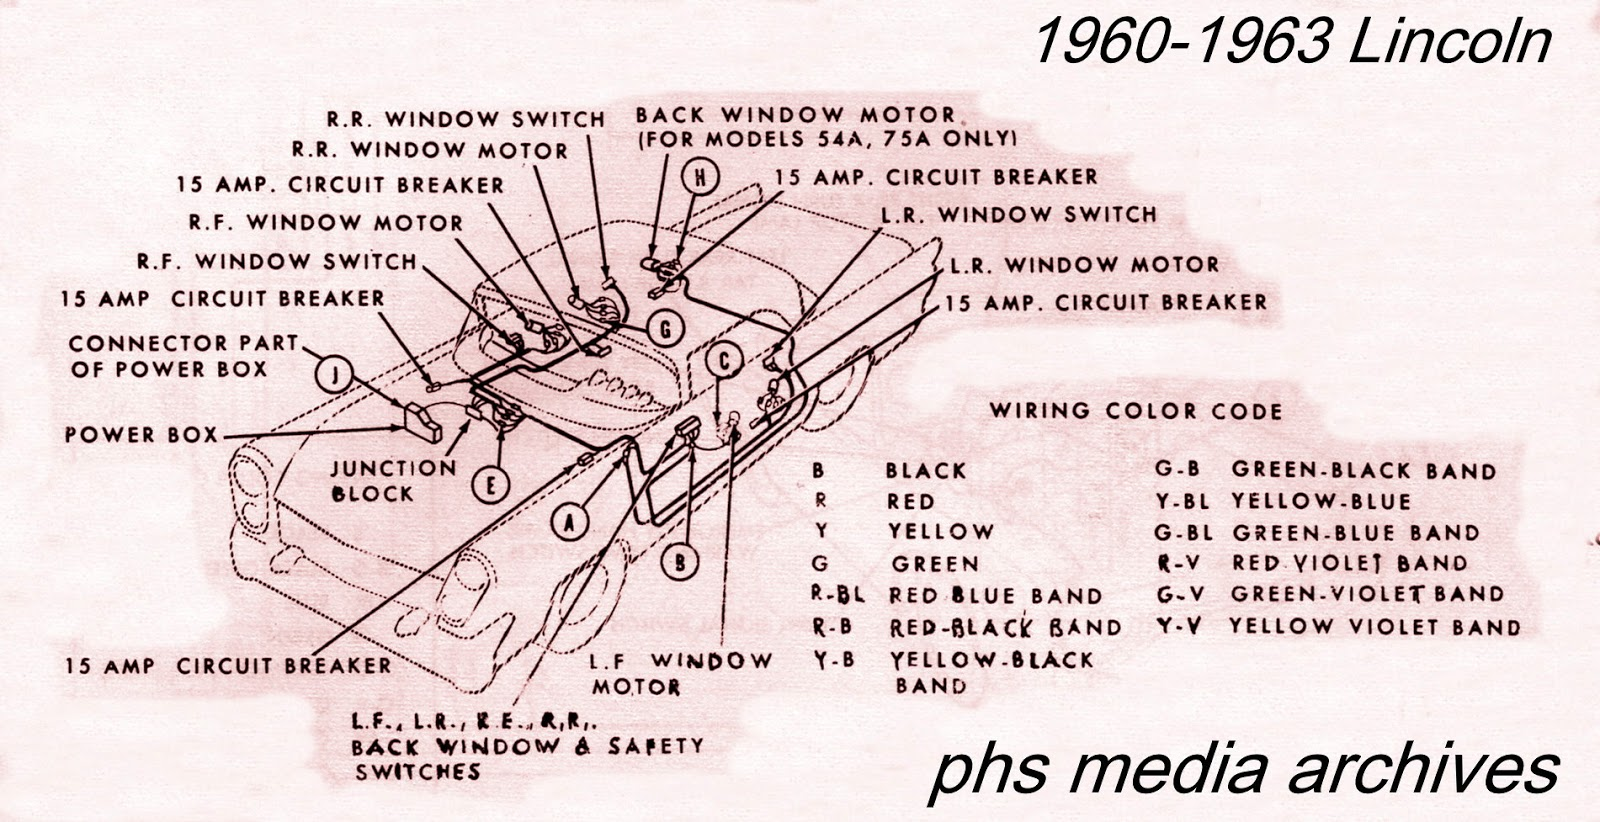 1960 Lincoln Wiring Diagram Ford Thunderbird Images Gallery